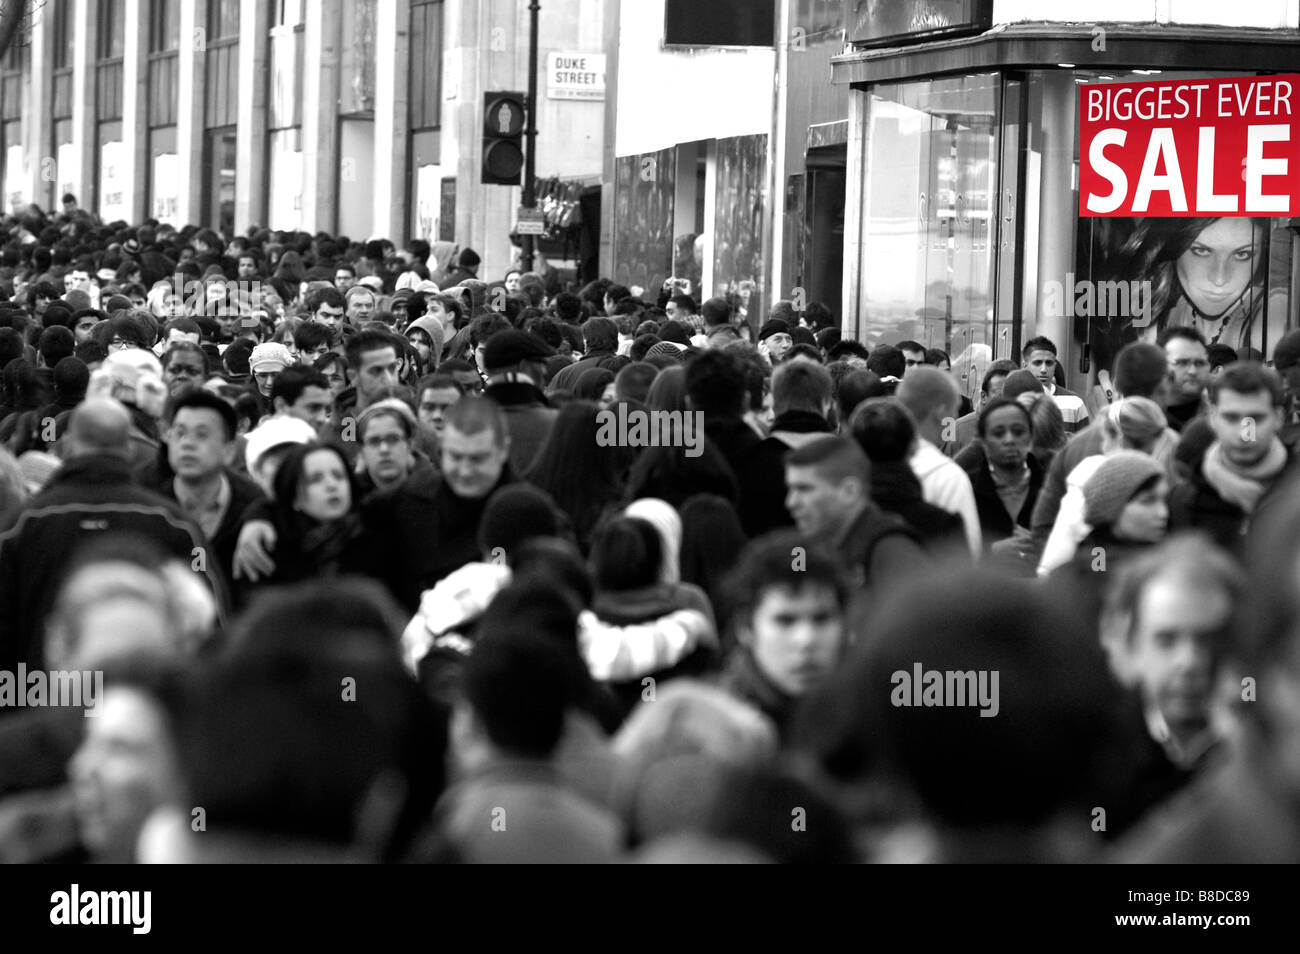 Sale obsession at Oxford Street, London 2009 - Stock Image